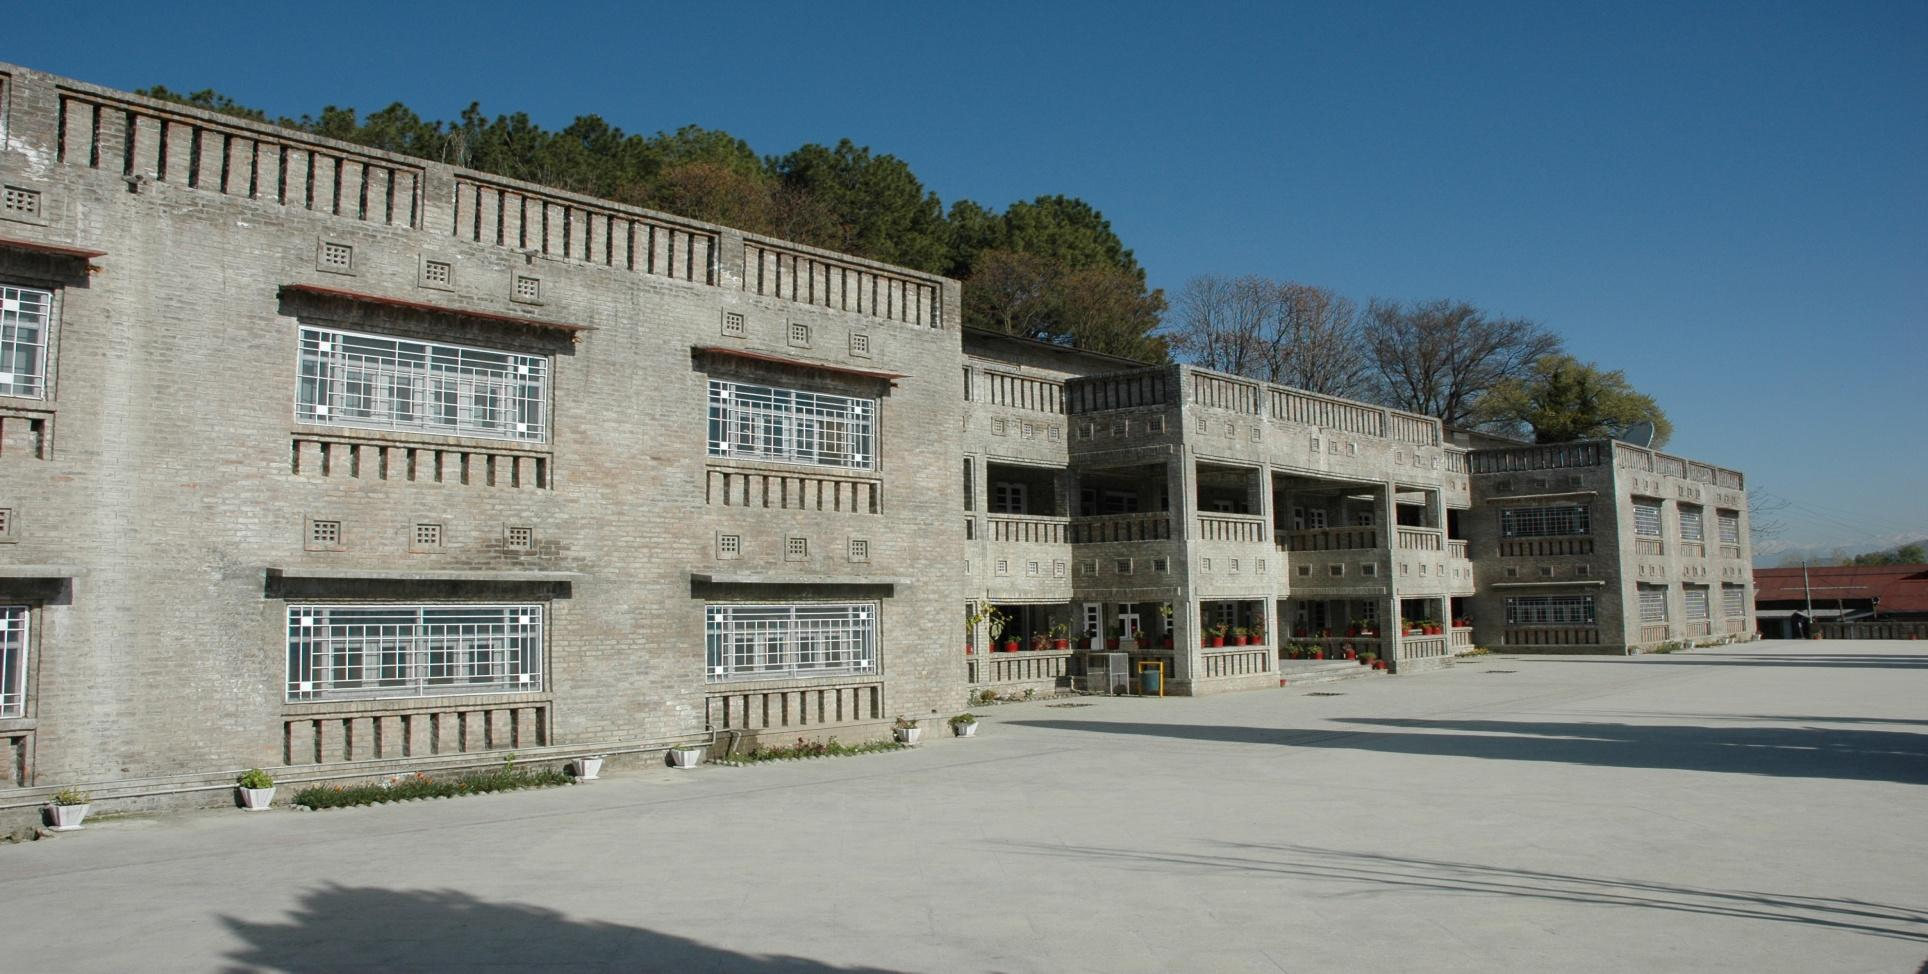 Death of Osama bin Laden - Wikipedia Army burn hall college abbottabad pictures